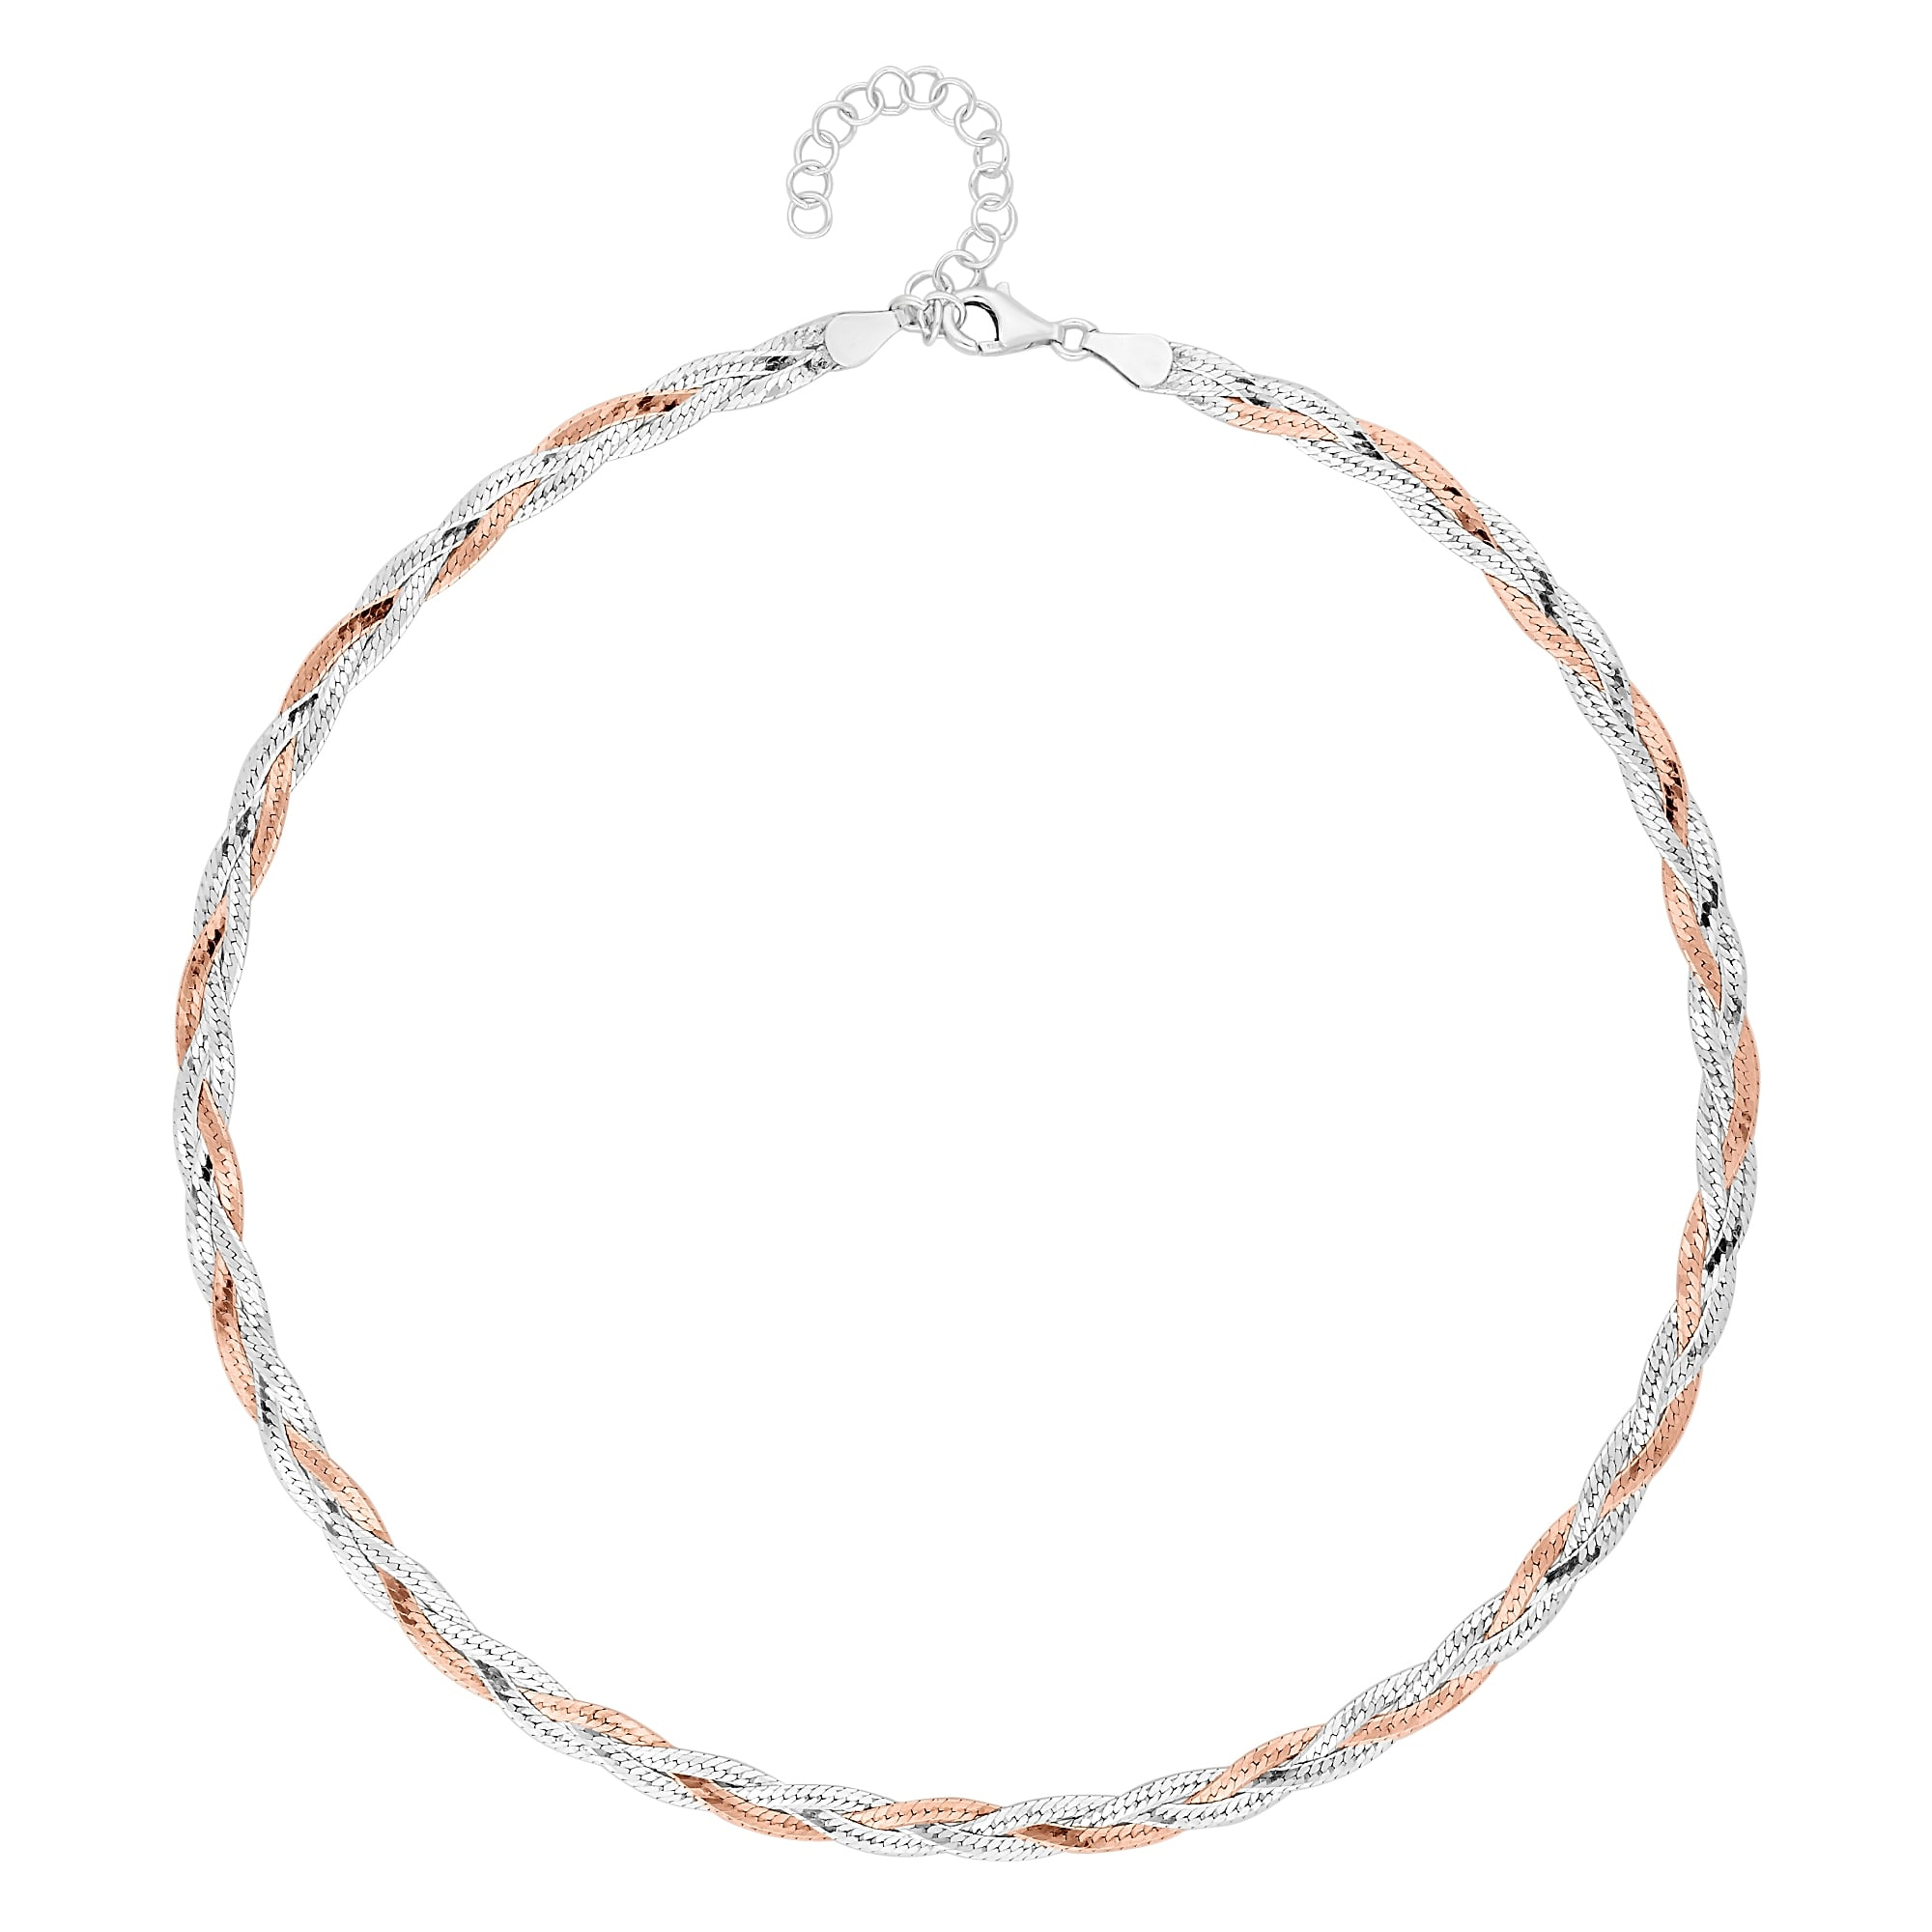 Harron Bone Necklace: Simply Silver 14ct Rose Gold Plated Sterling Silver